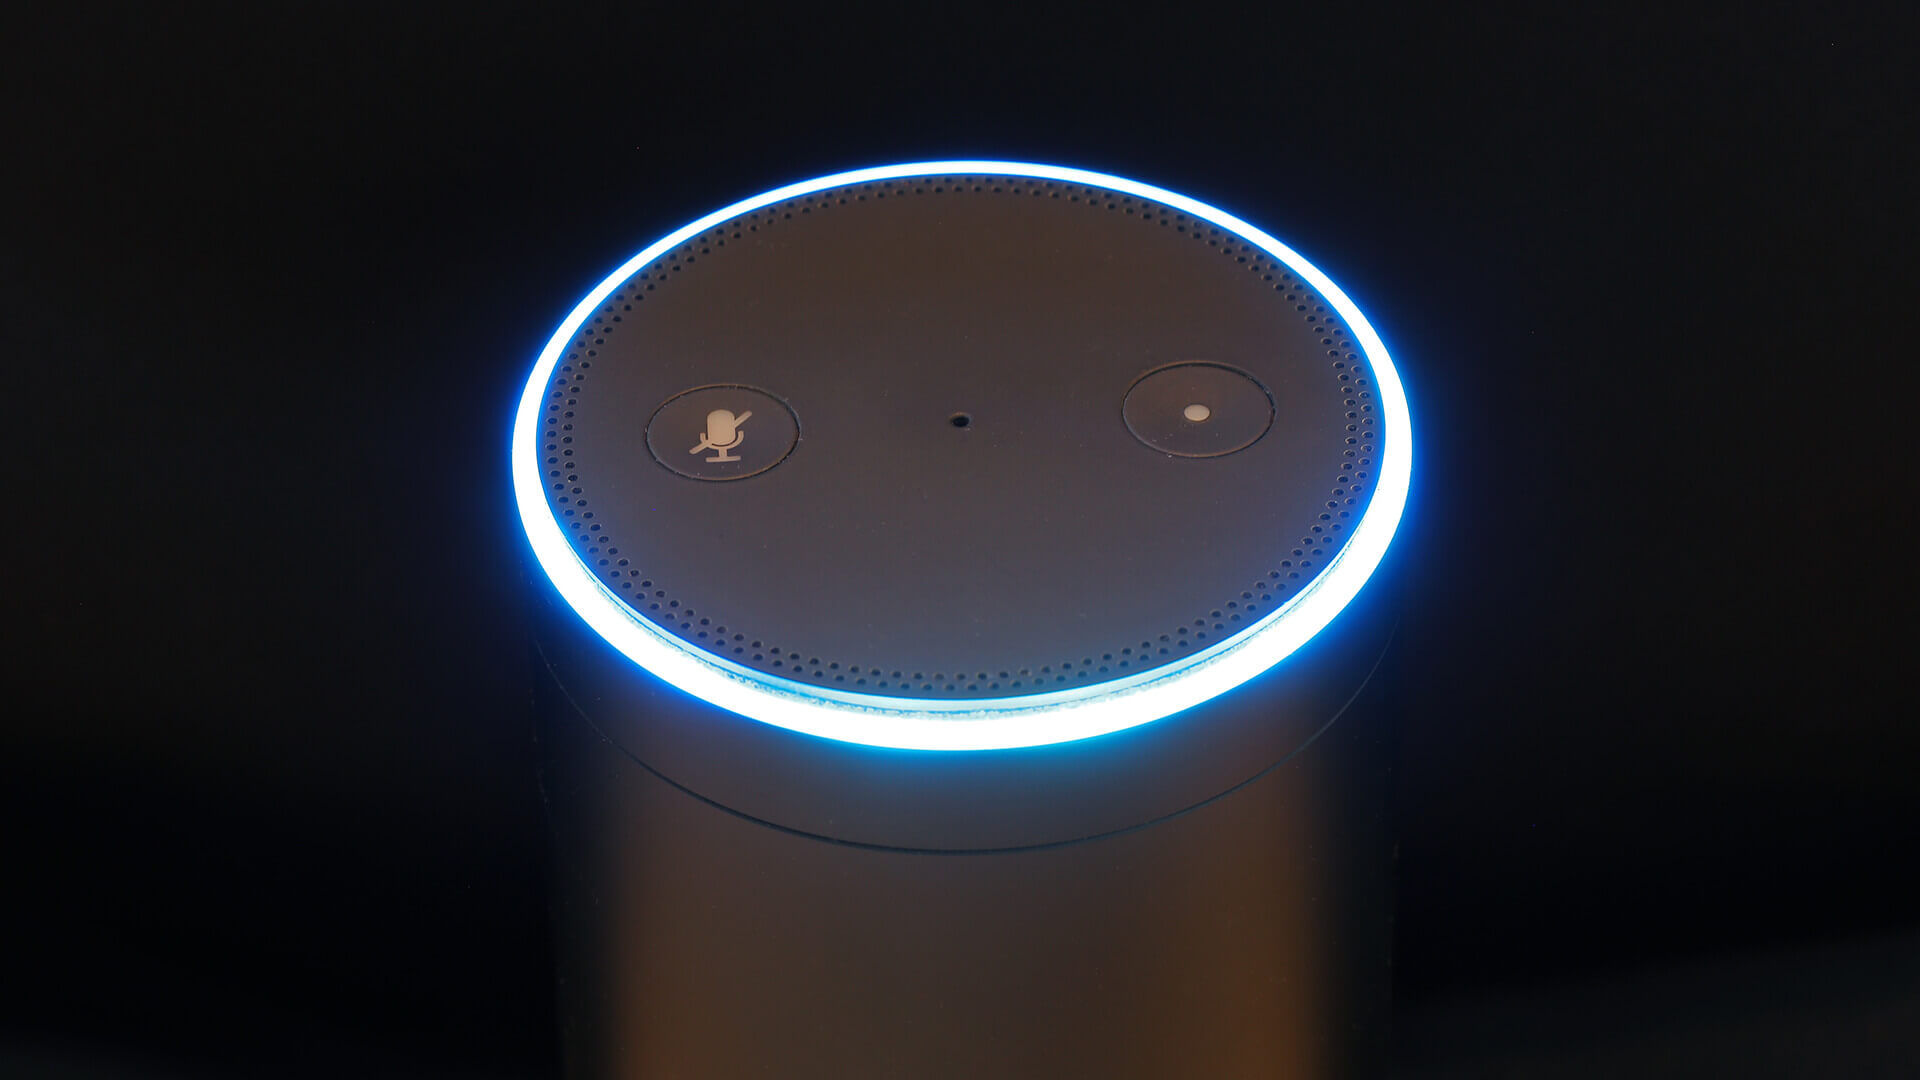 Privacy issues may be hurting smart speaker market growth